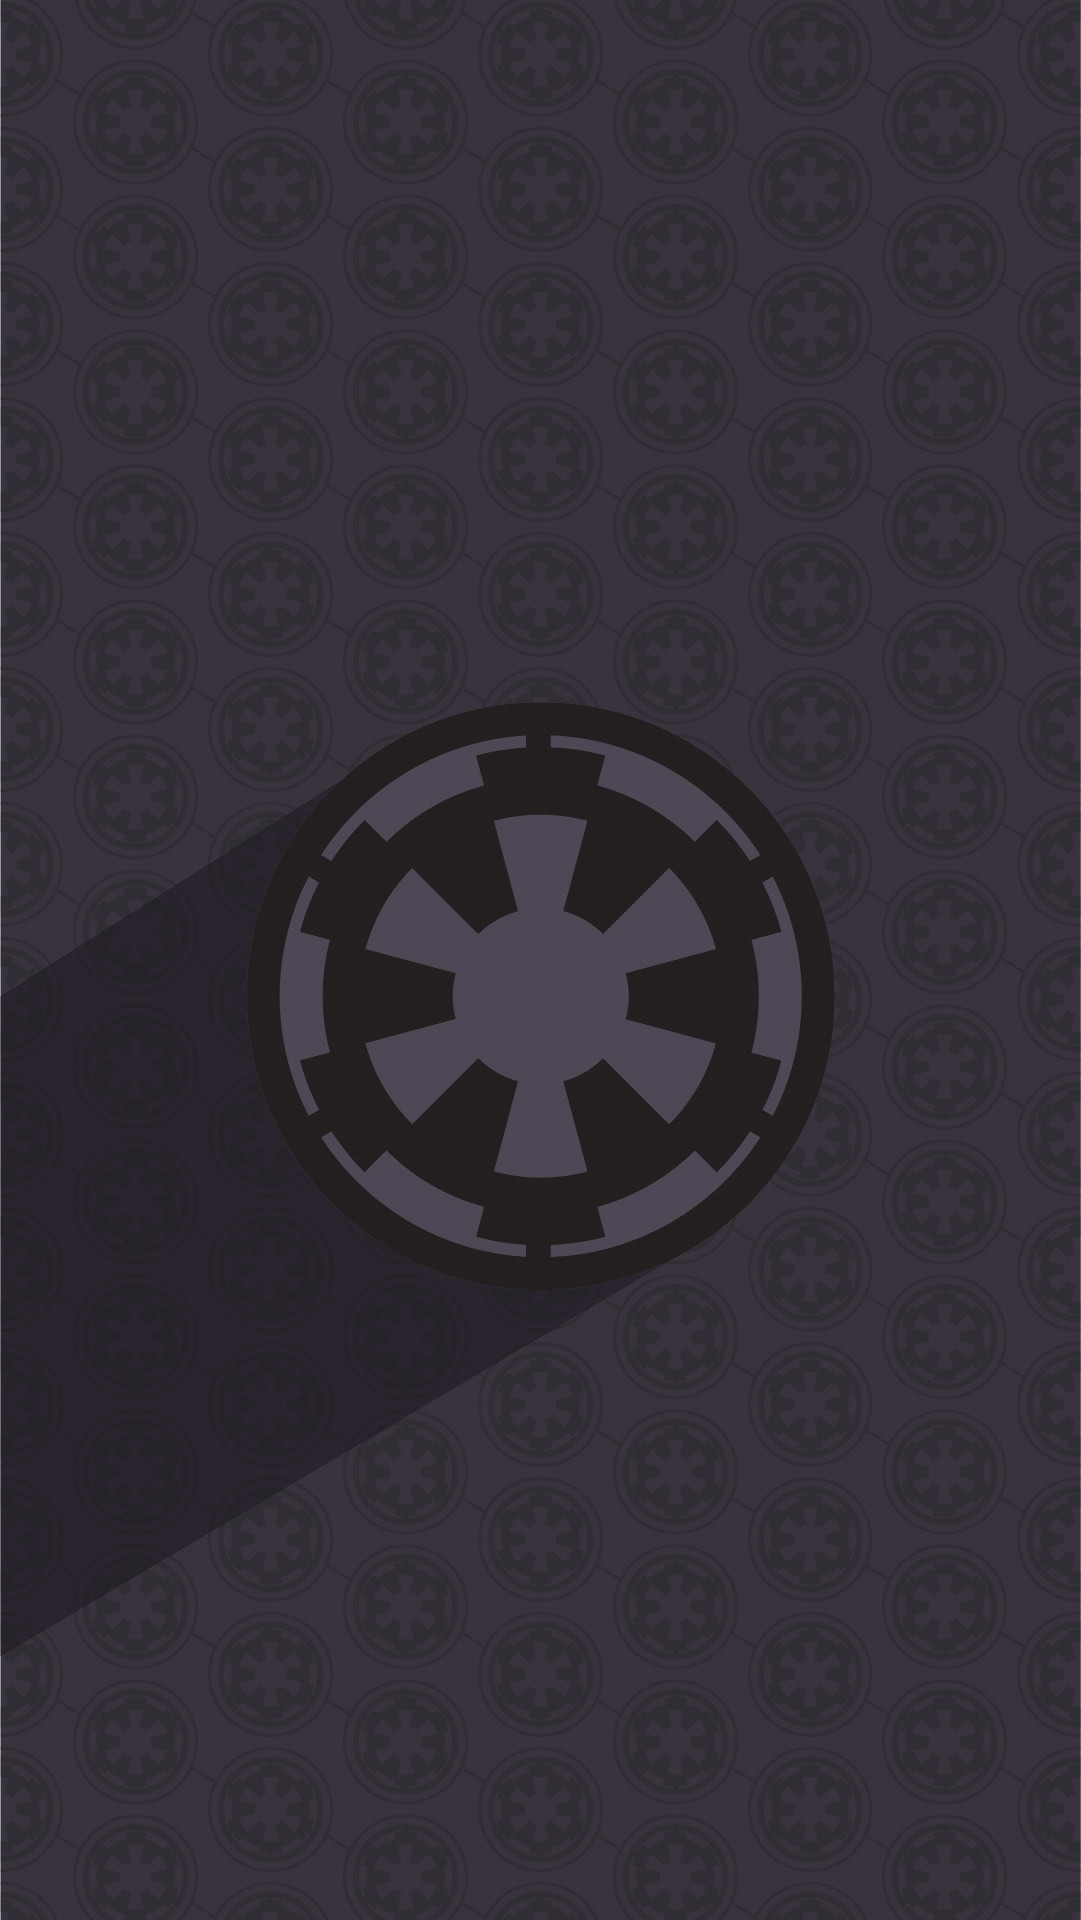 Res: 1081x1920, May the wallpapers be with you.